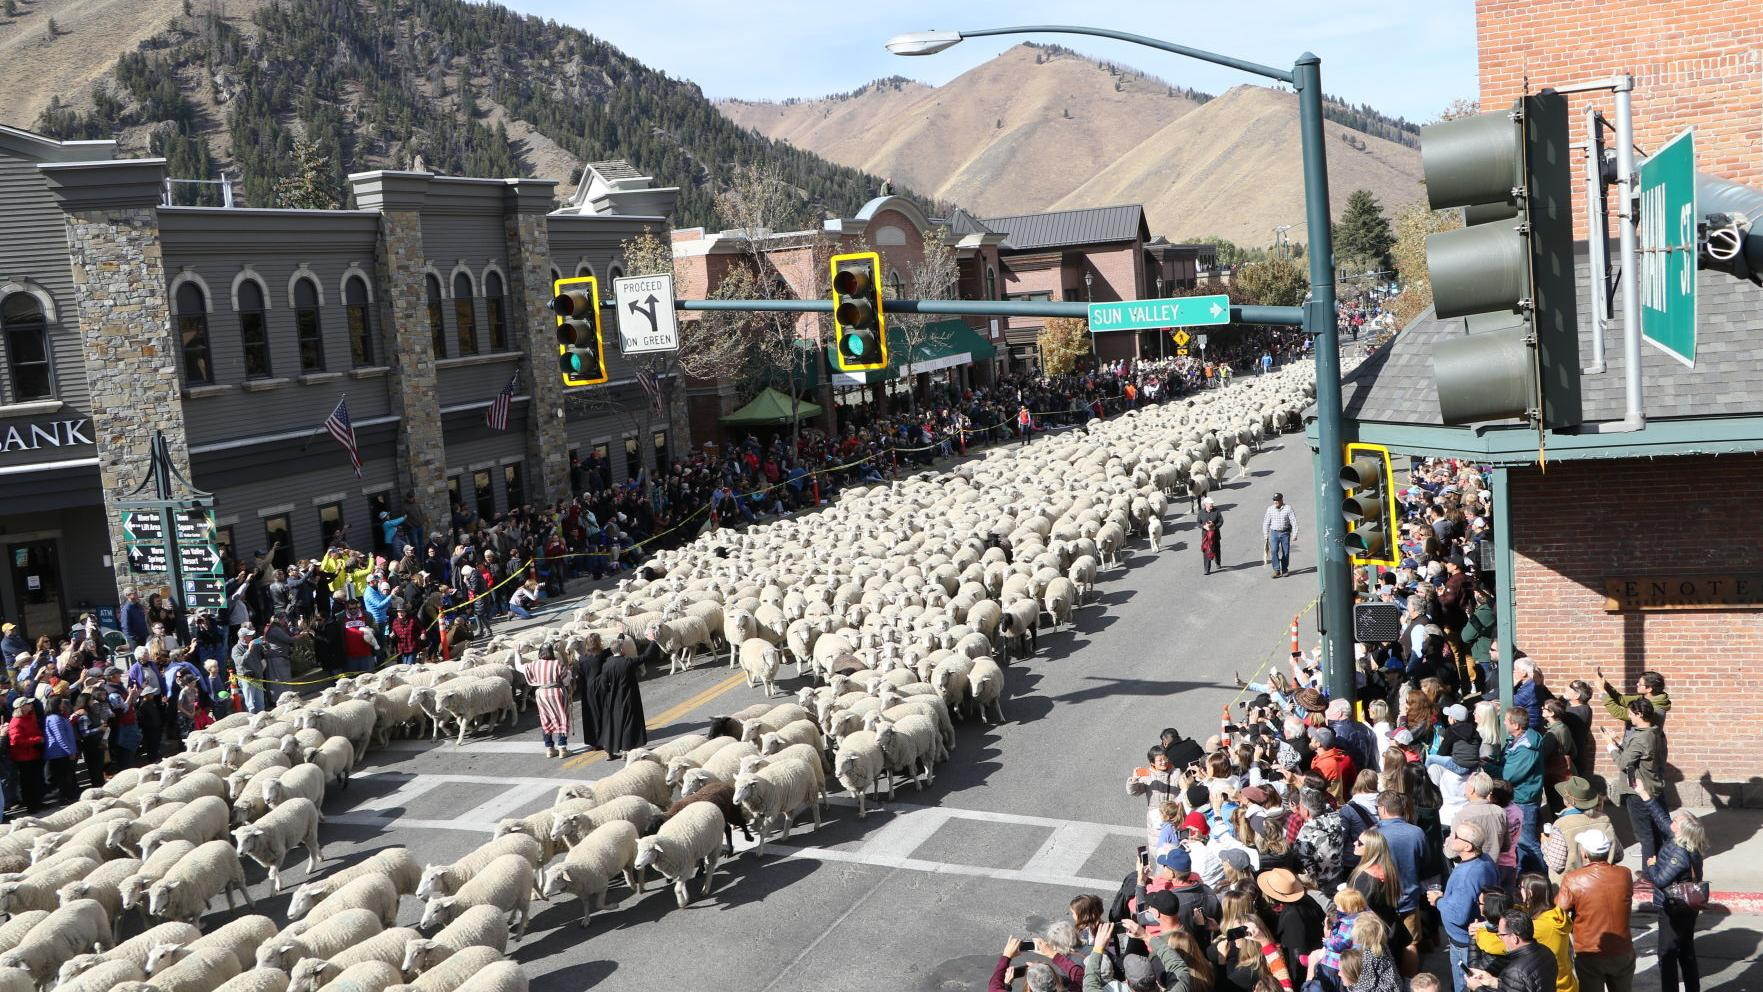 The Big Sheep Parade with the presence of a band of 1,500 sheep